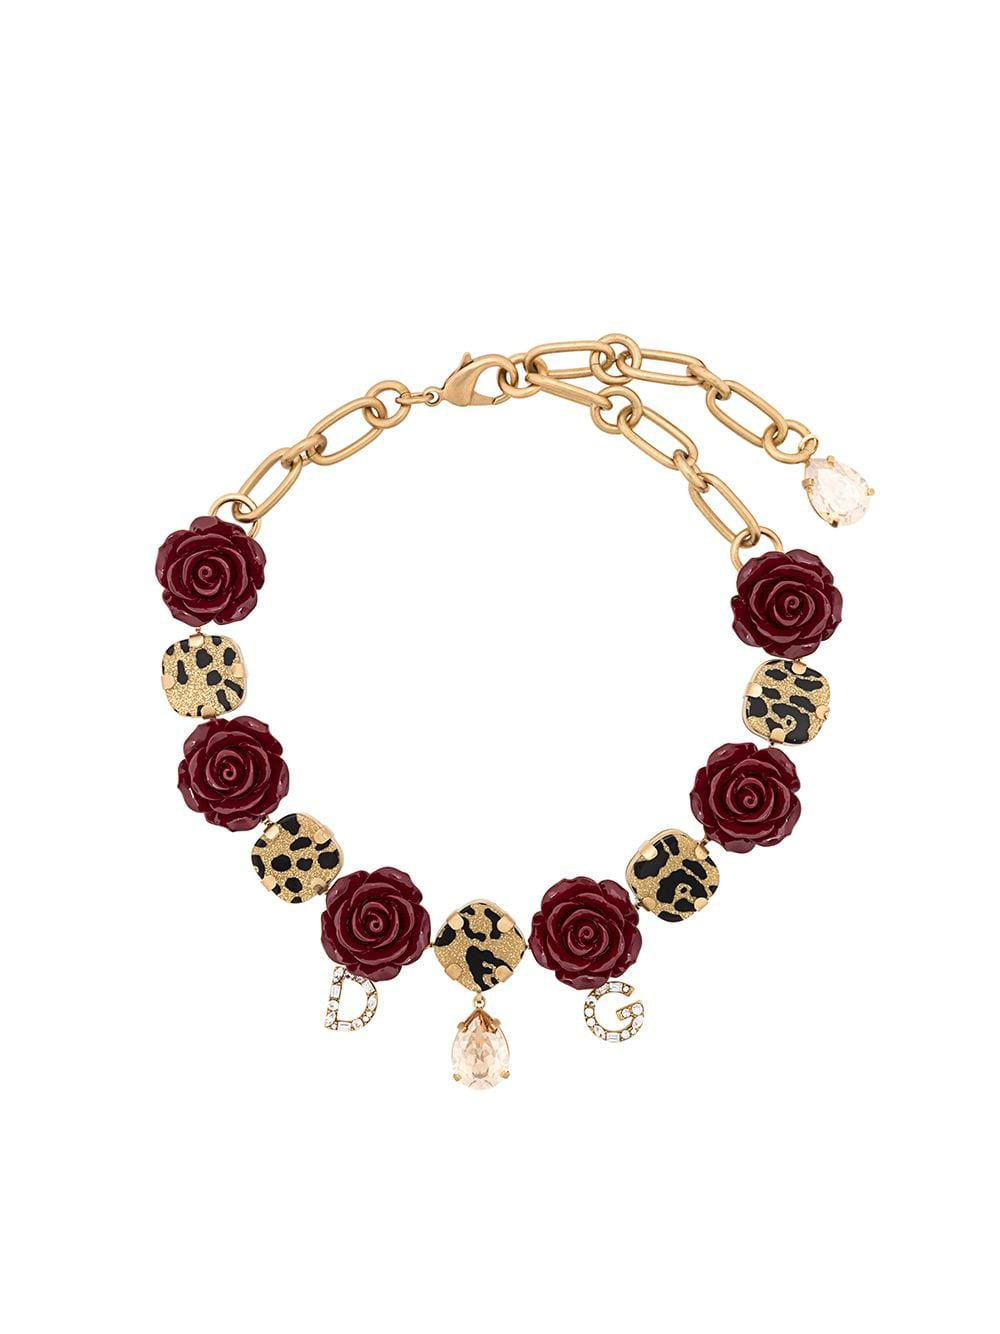 Dolce & Gabbana Roses Necklace